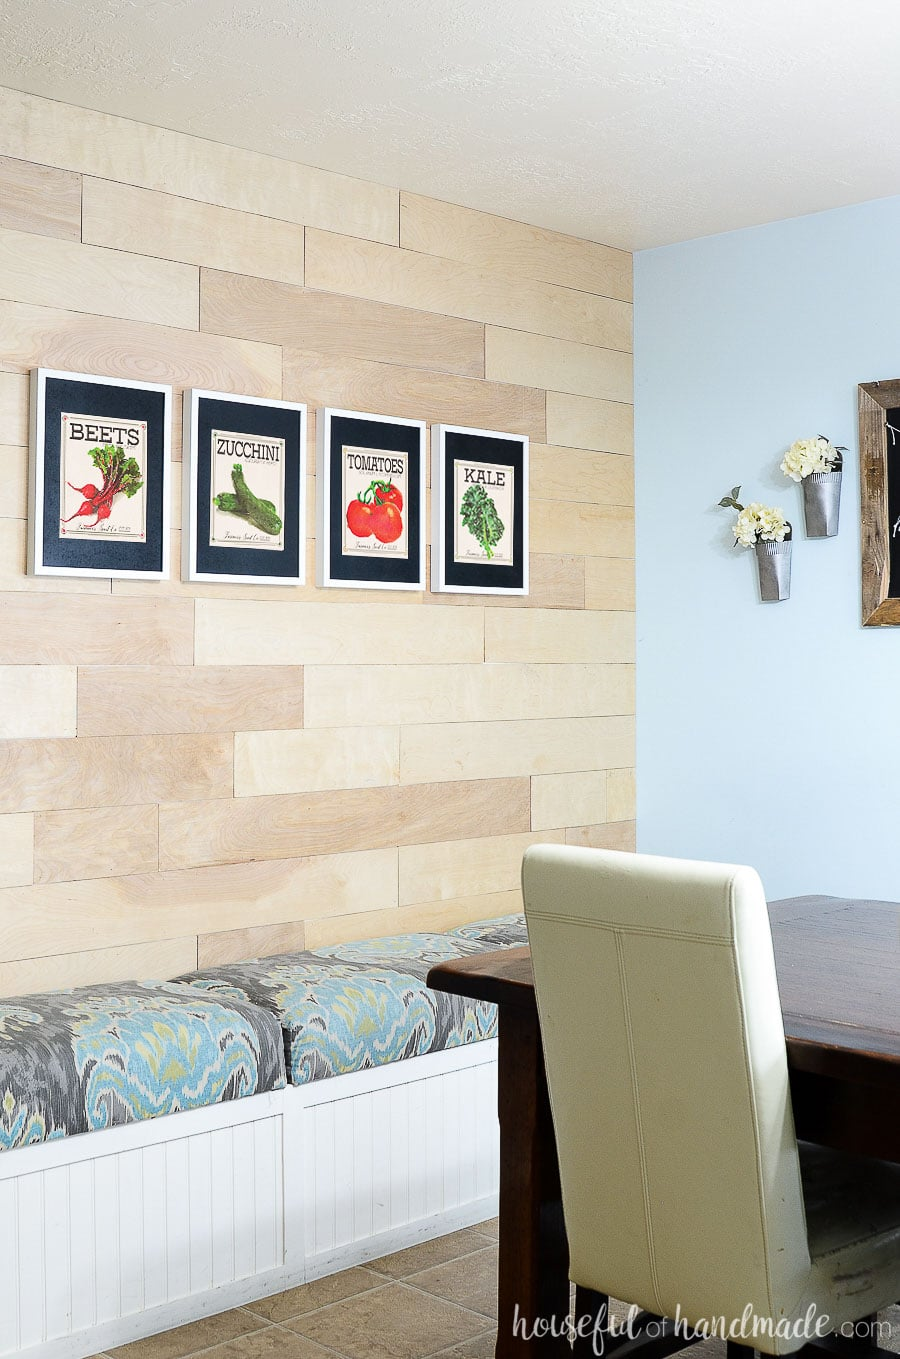 Vegetable seed packet art of beets, zucchini, tomatoes, and kale on the wood accent wall of the dining room.